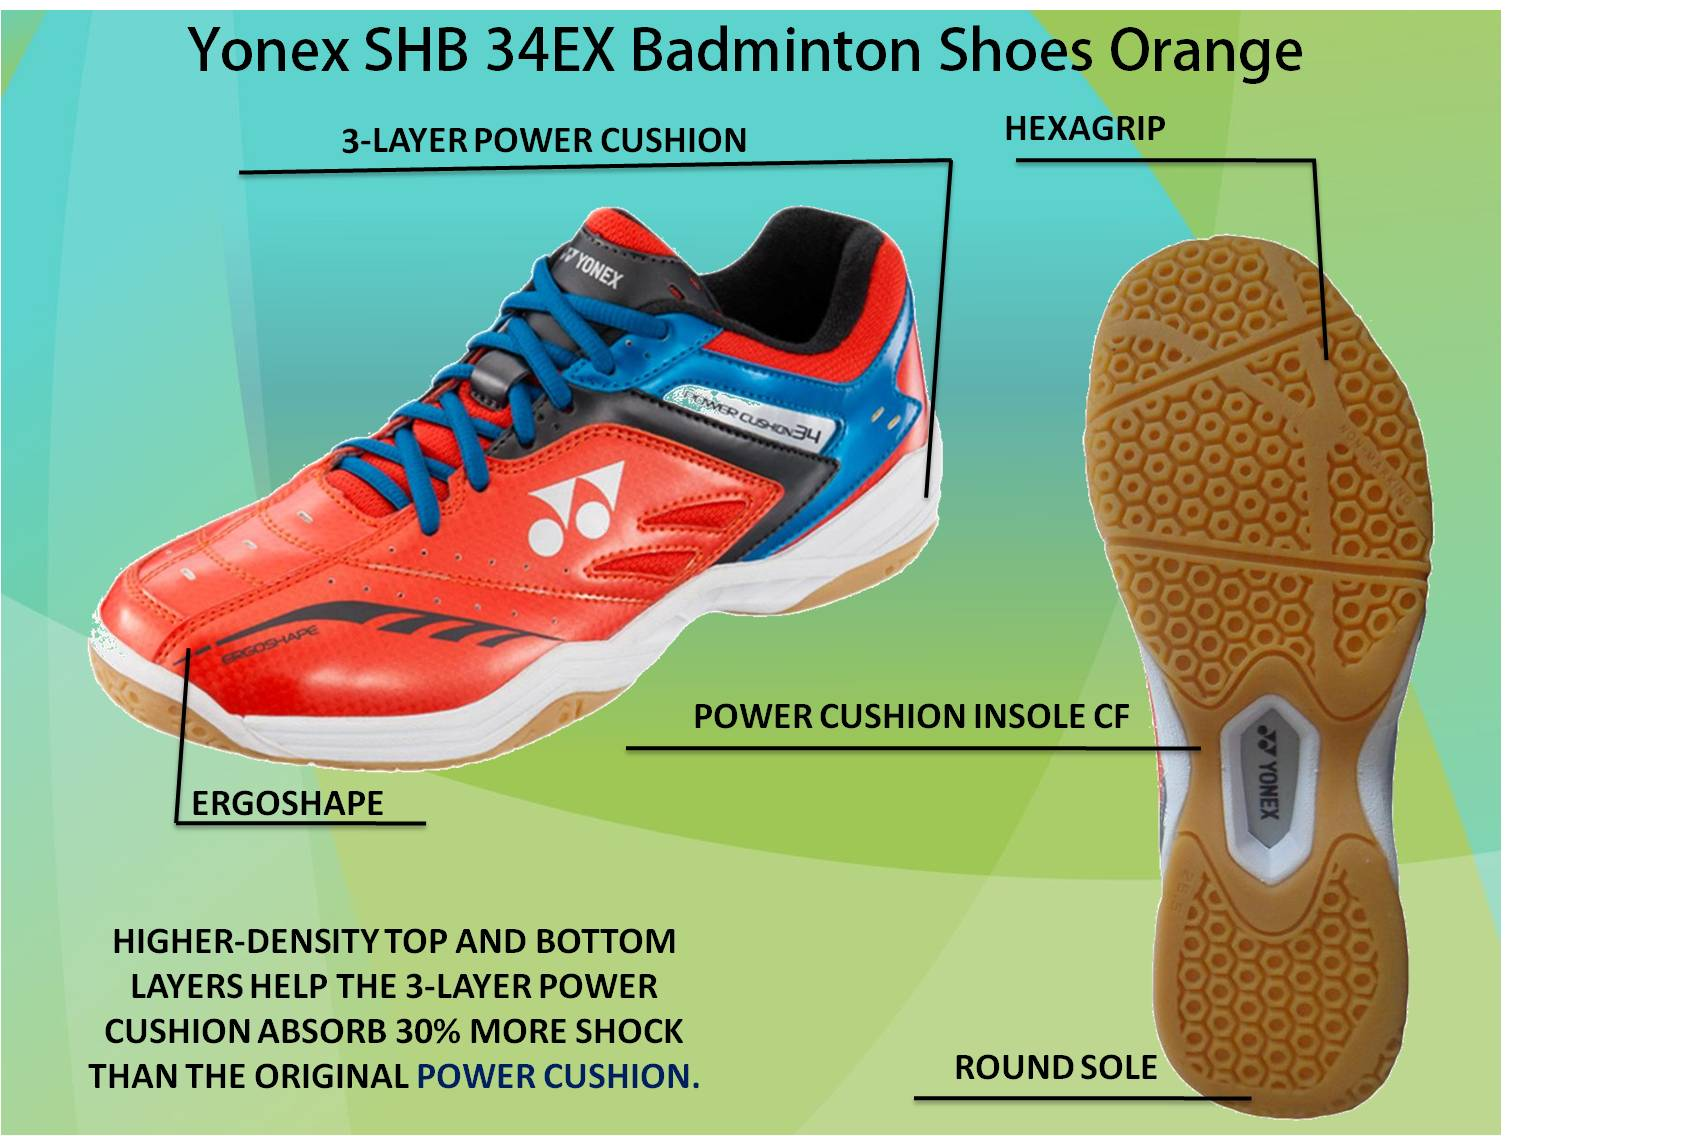 Yonex SHB 34 EX Badminton Shoes Orange